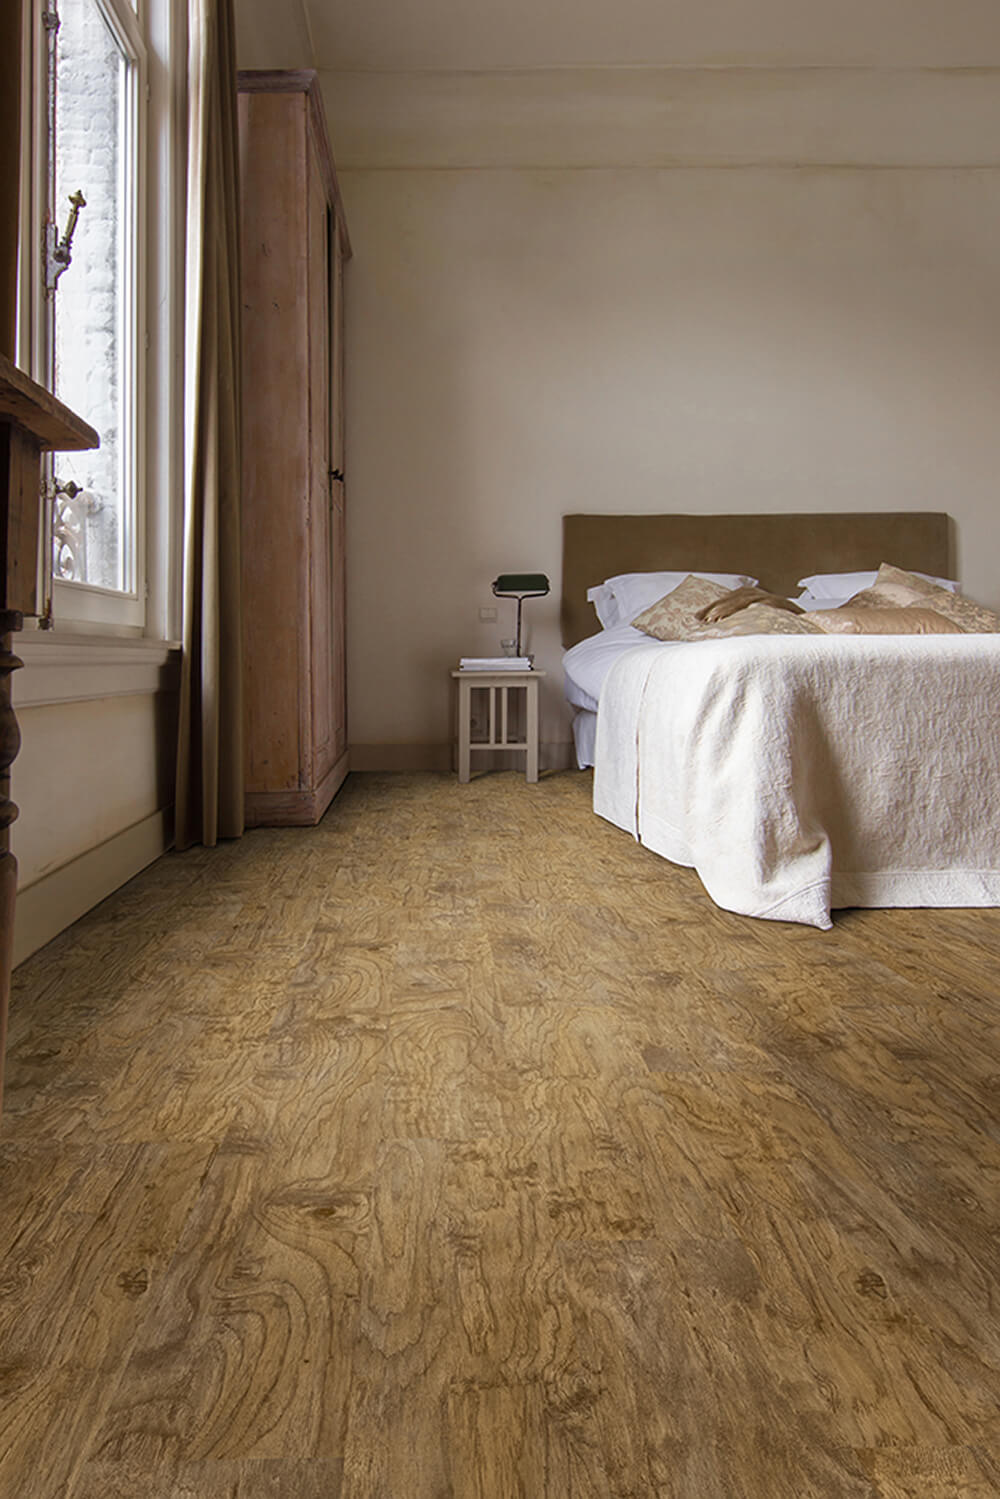 Floorcraft LVC LVT HickoryGrove 45 Resized1000